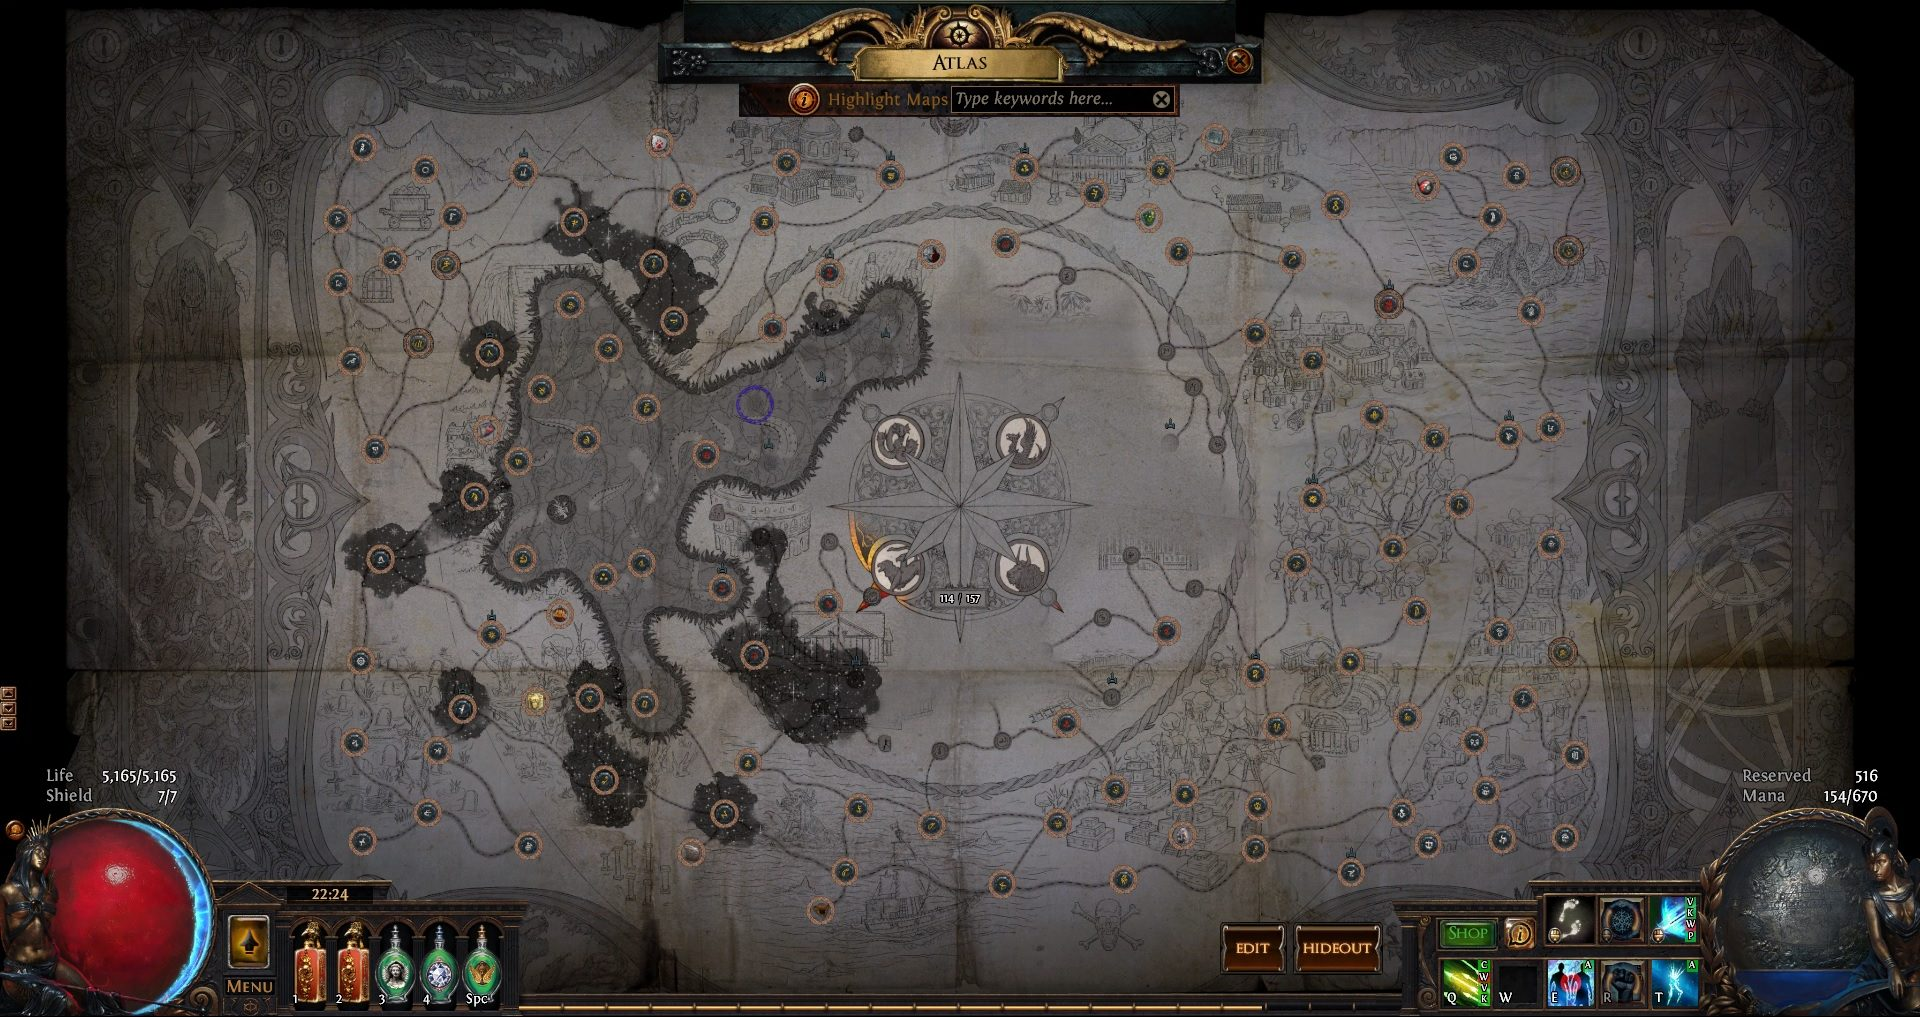 This is what my Path of Exile Atlas looks like.